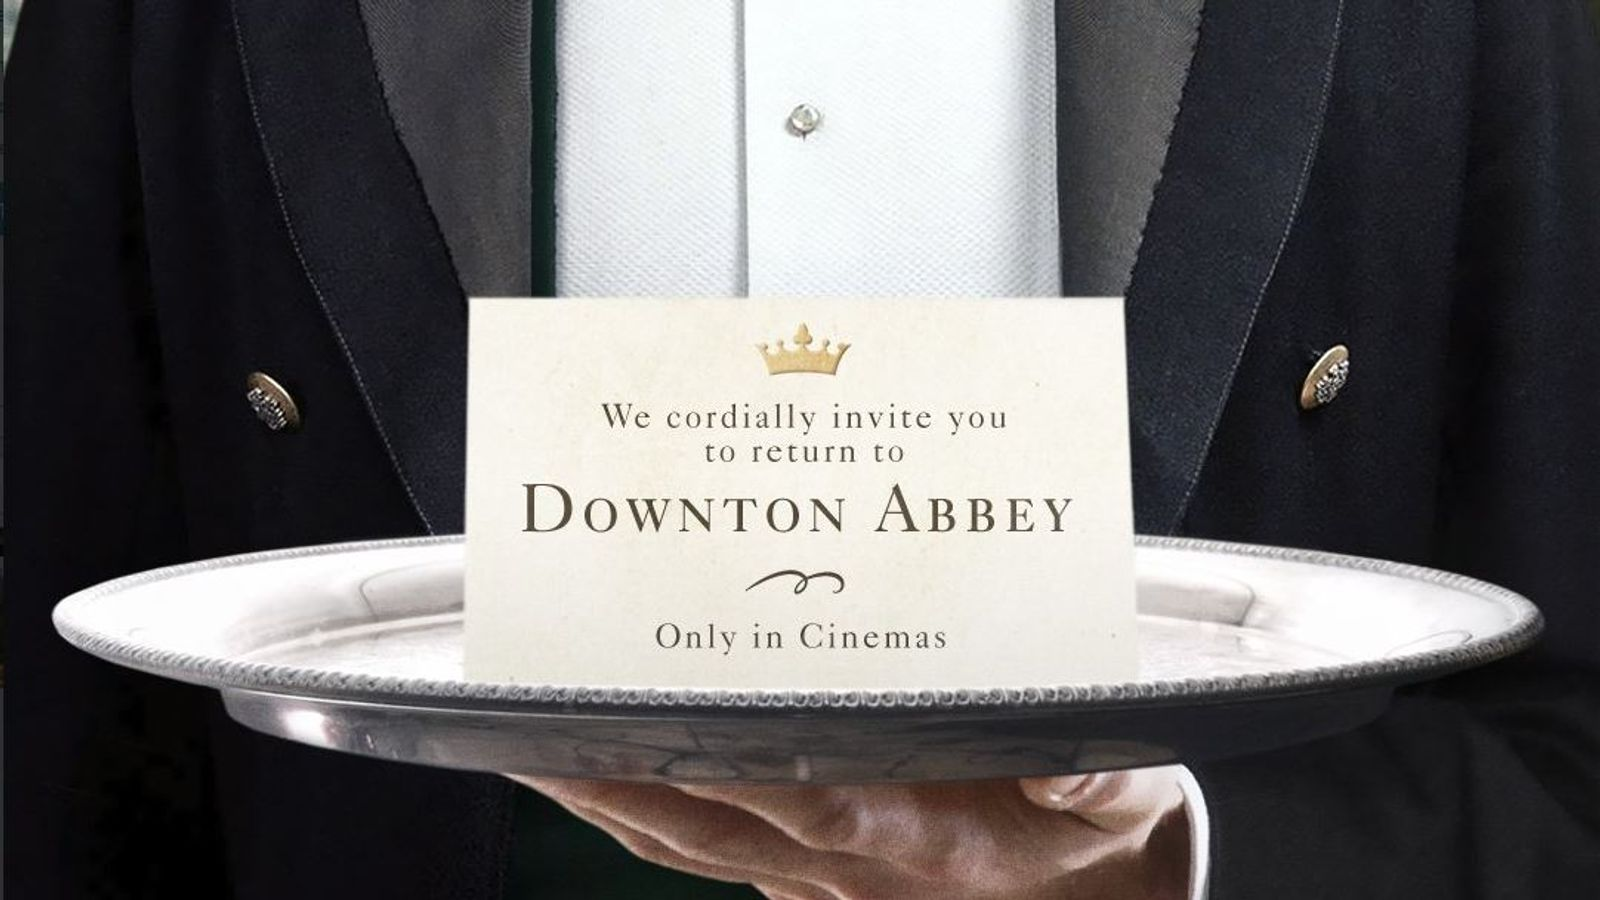 Downton Abbey movie going into production